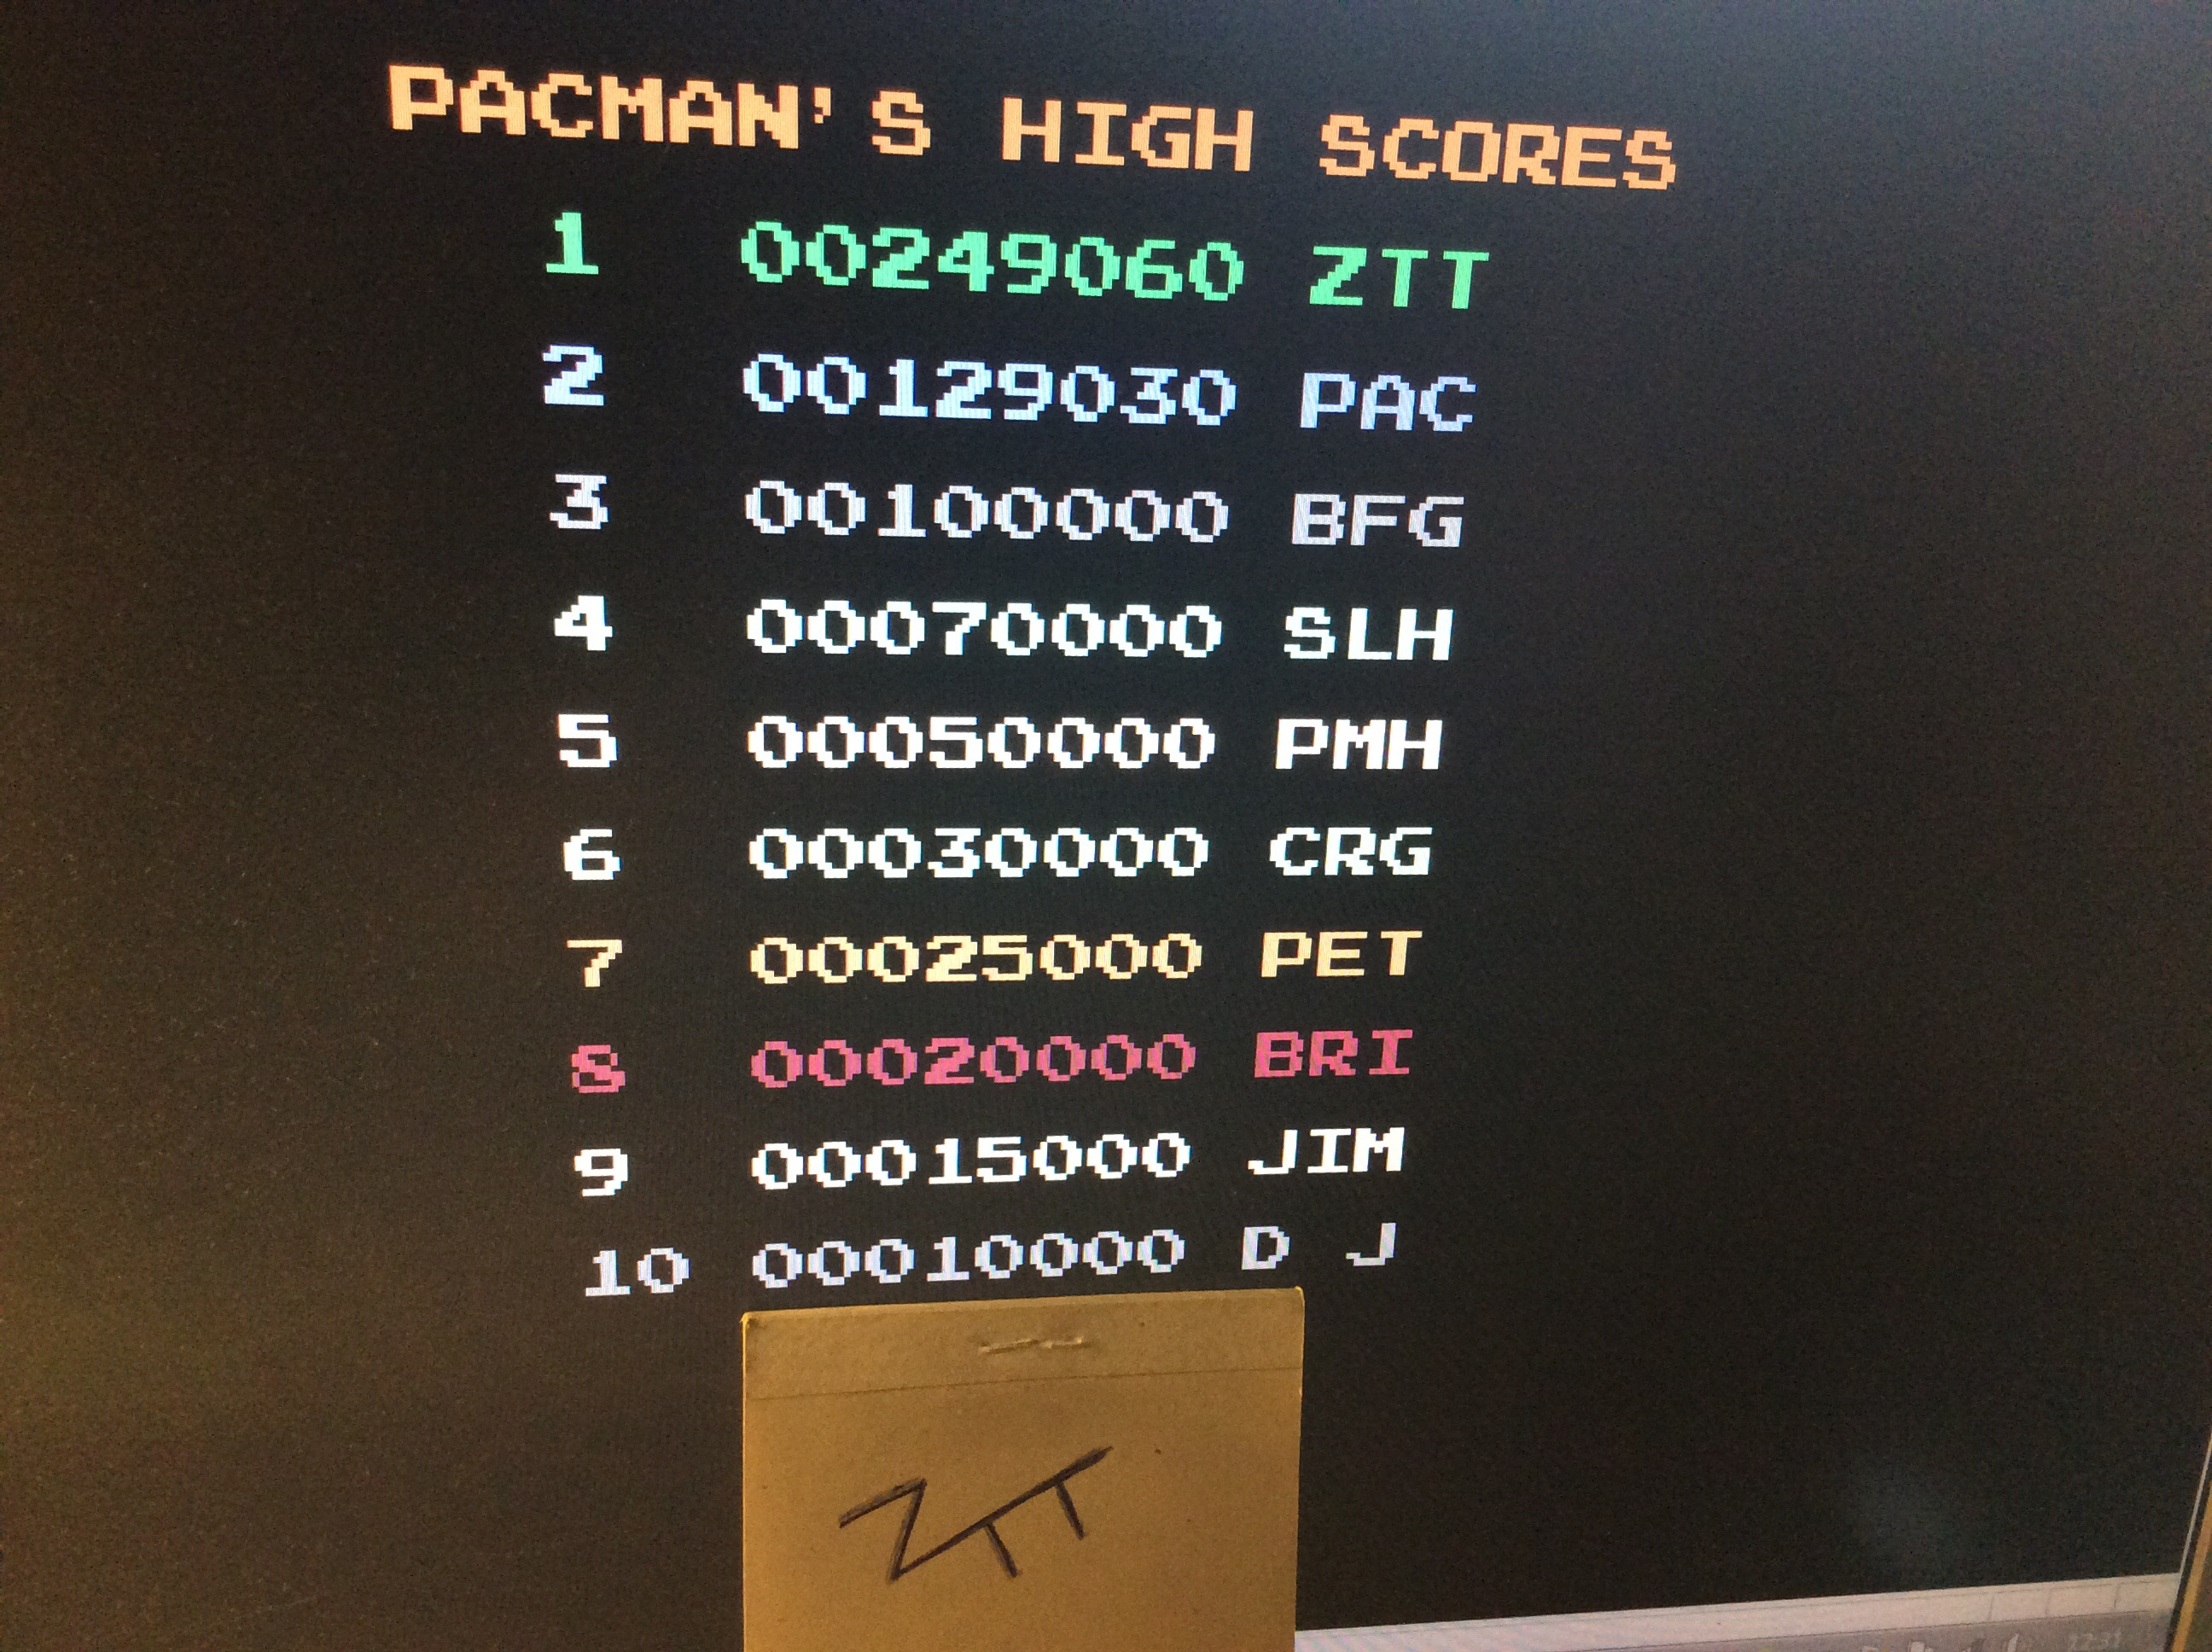 Pacmania 249,060 points